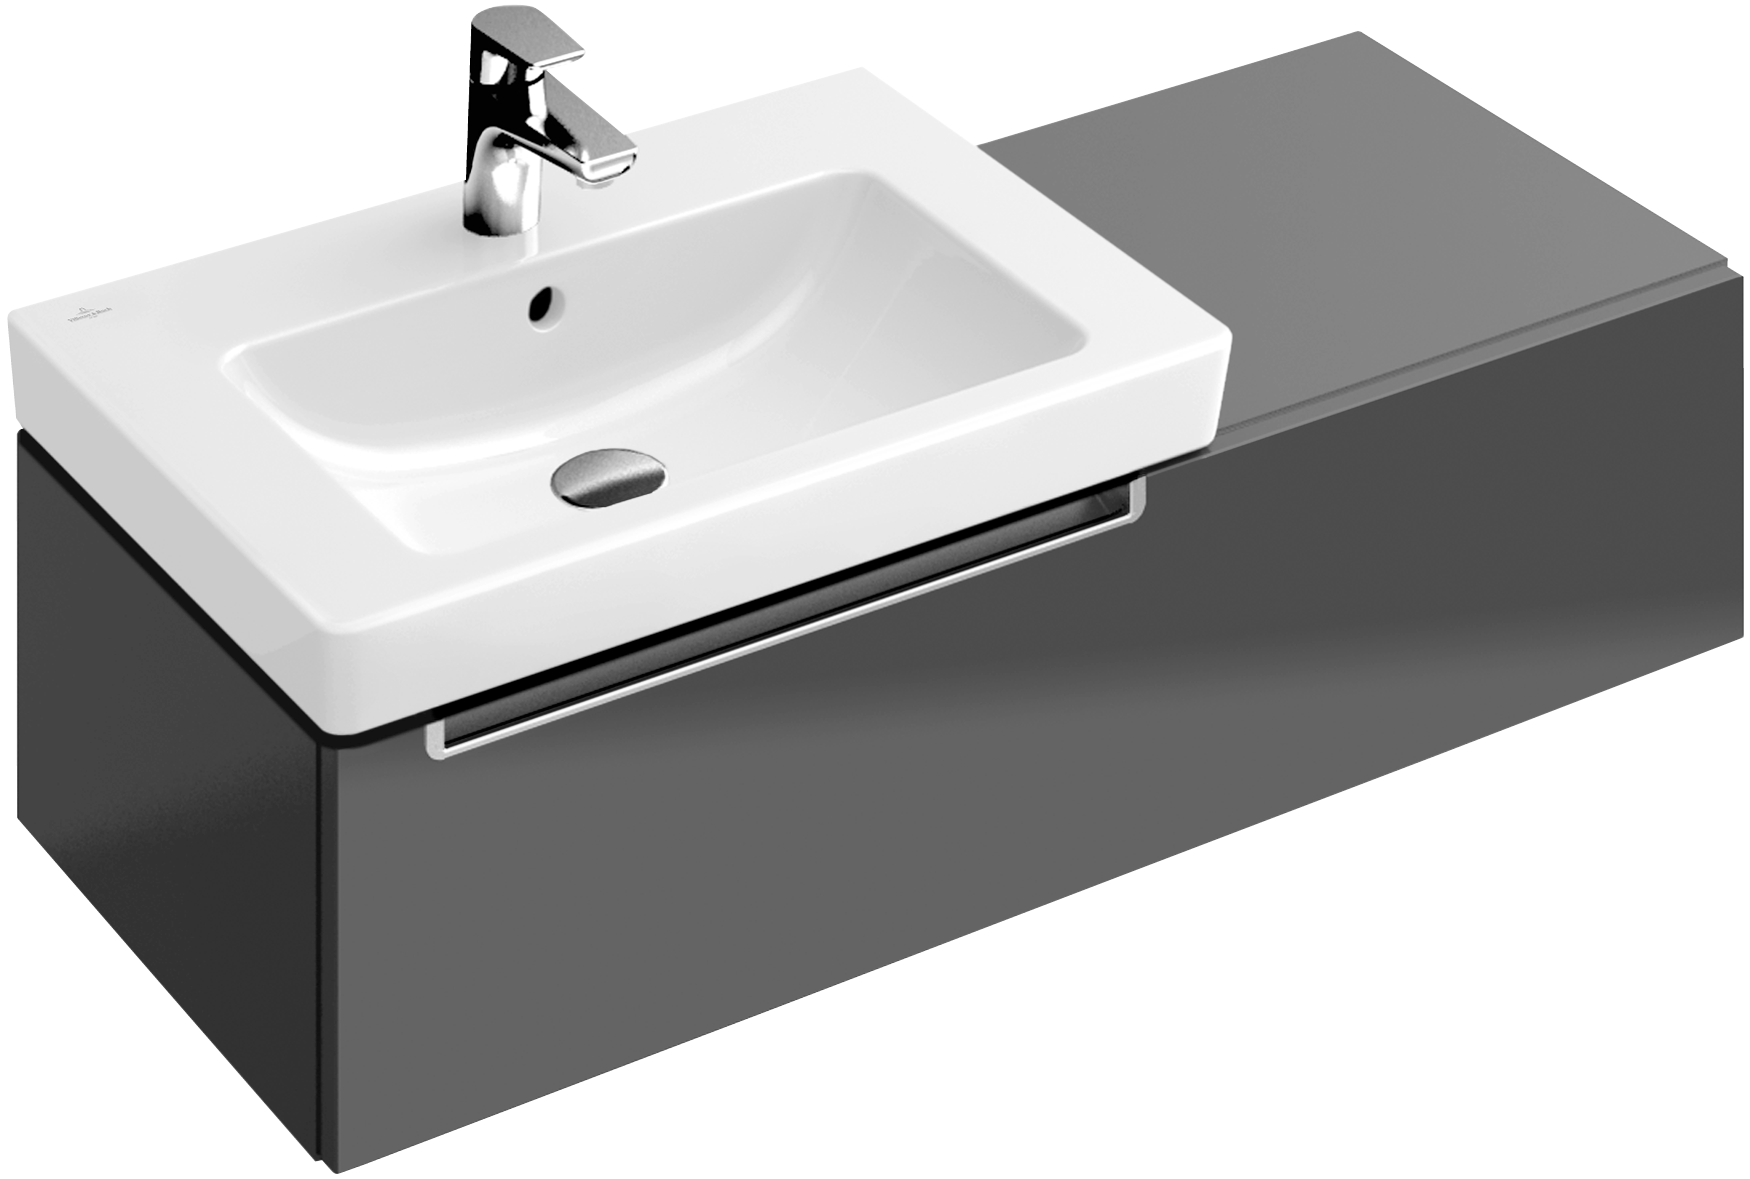 Villeroy and boch bathroom sink - Subway 2 0 Bathroom Furniture Vanity Unit For Washbasin Bathroom Sink Cabinets